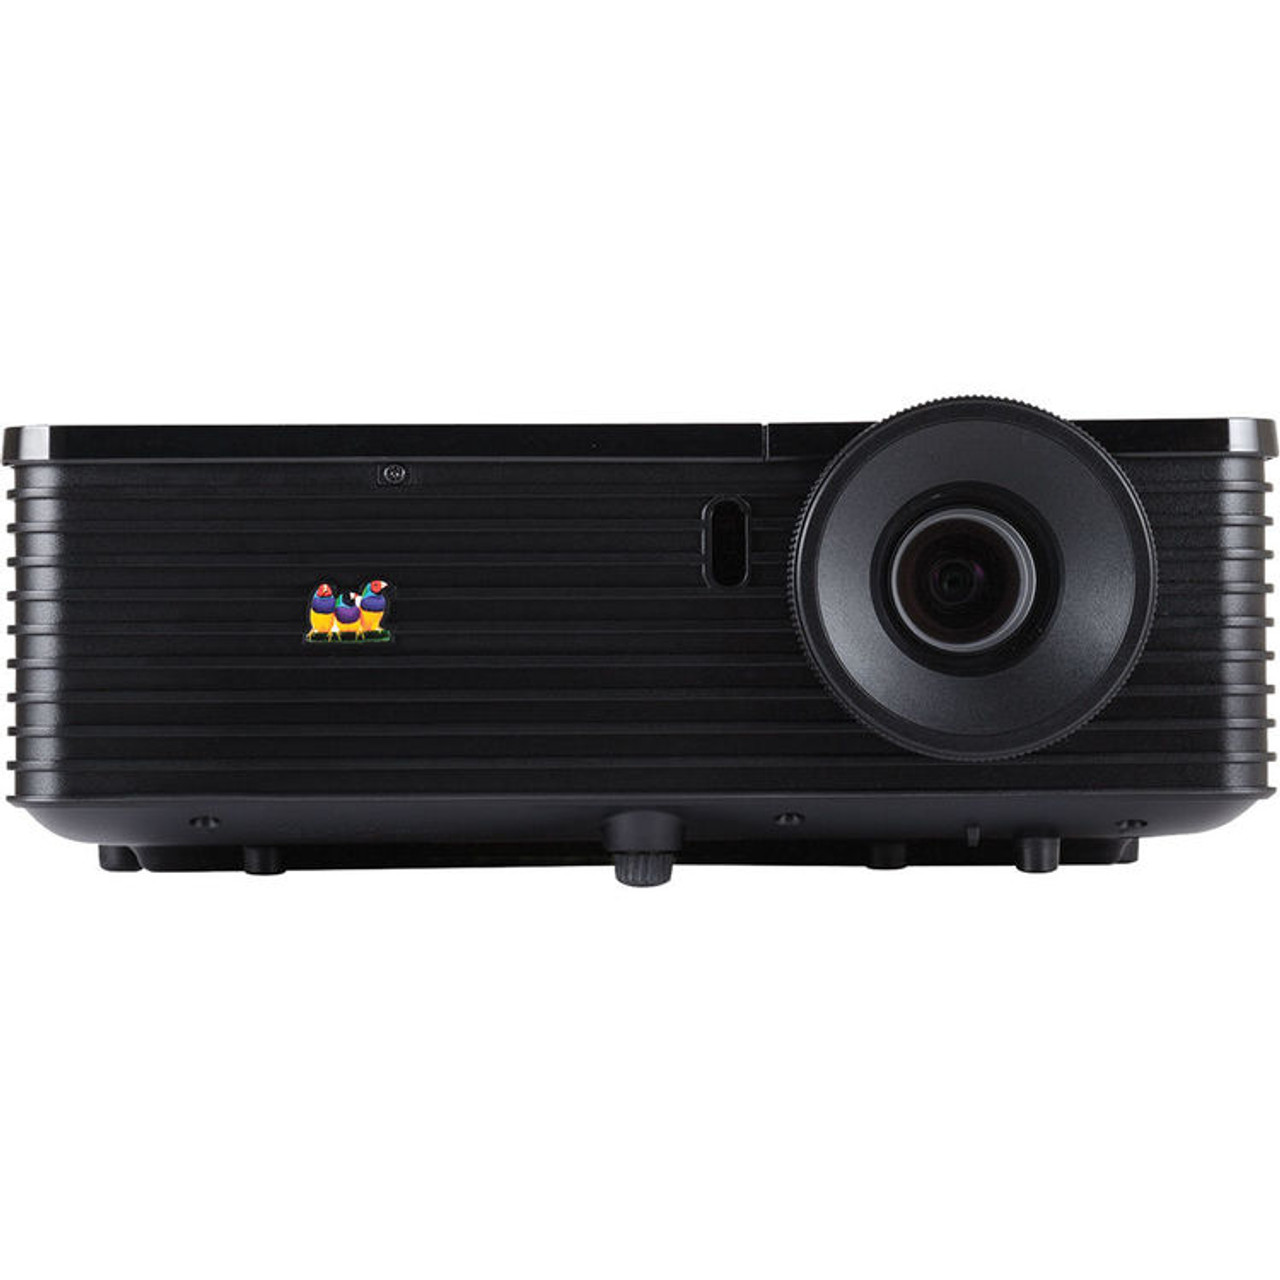 ViewSonic PJD6544W-R WXGA 1280x800 DLP Projector with LAN Control, Wired and Wireless LAN Display - C Grade Refurbished